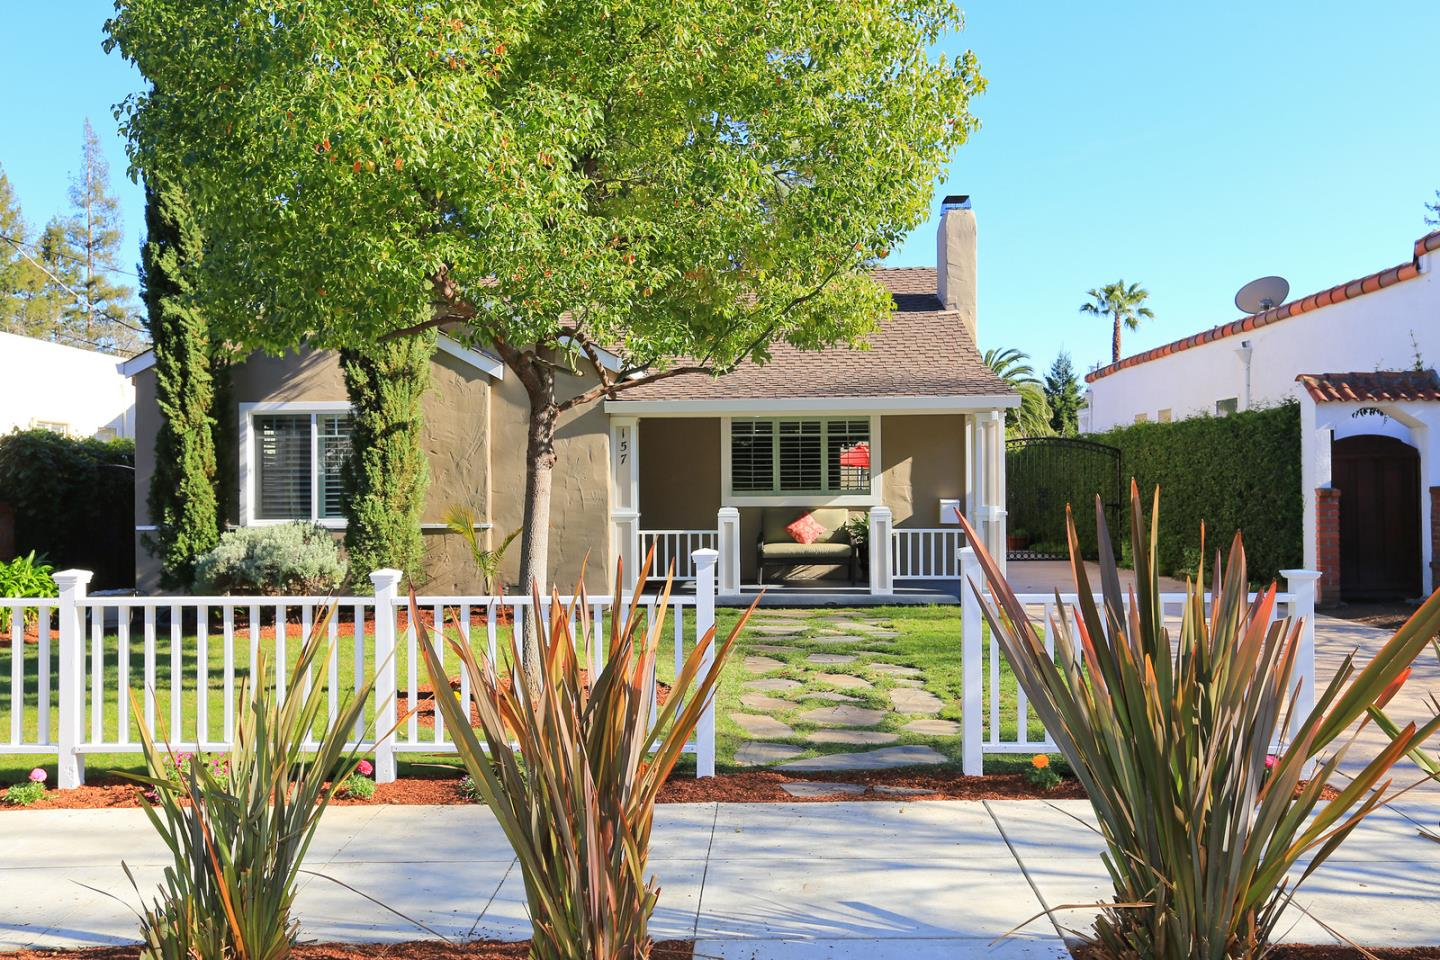 157 Finger Ave, Redwood City, CA 94062